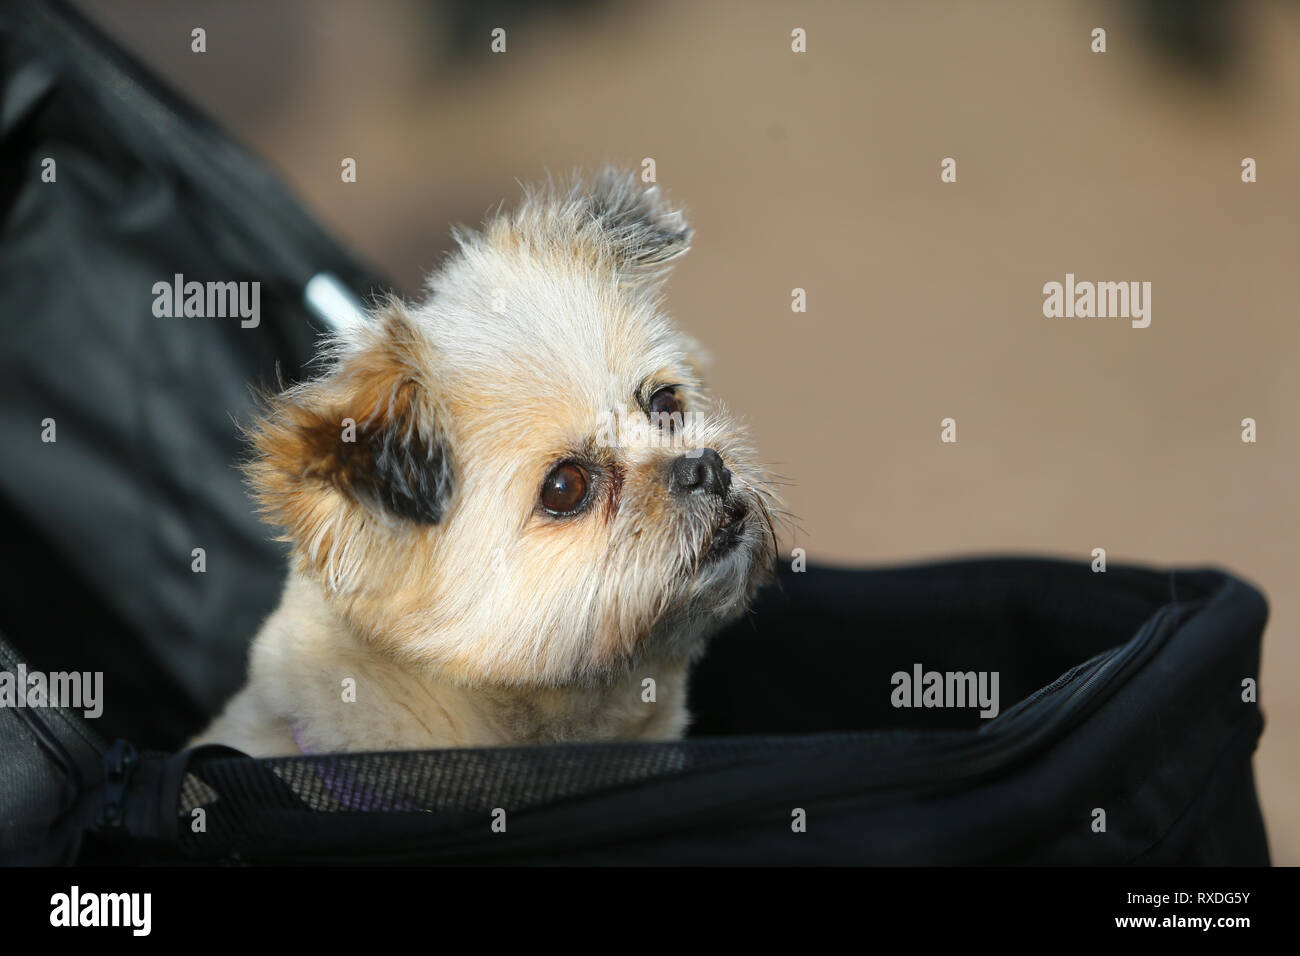 Birmingham, UK. 9th March, 2019. Dogs arrive with their owners on day three of Crufts, the world's largest dog show, at the NEC Birmingham. Minnie the Shipom arrives in her own pram. Peter Lopeman/Alamy Live News - Stock Image